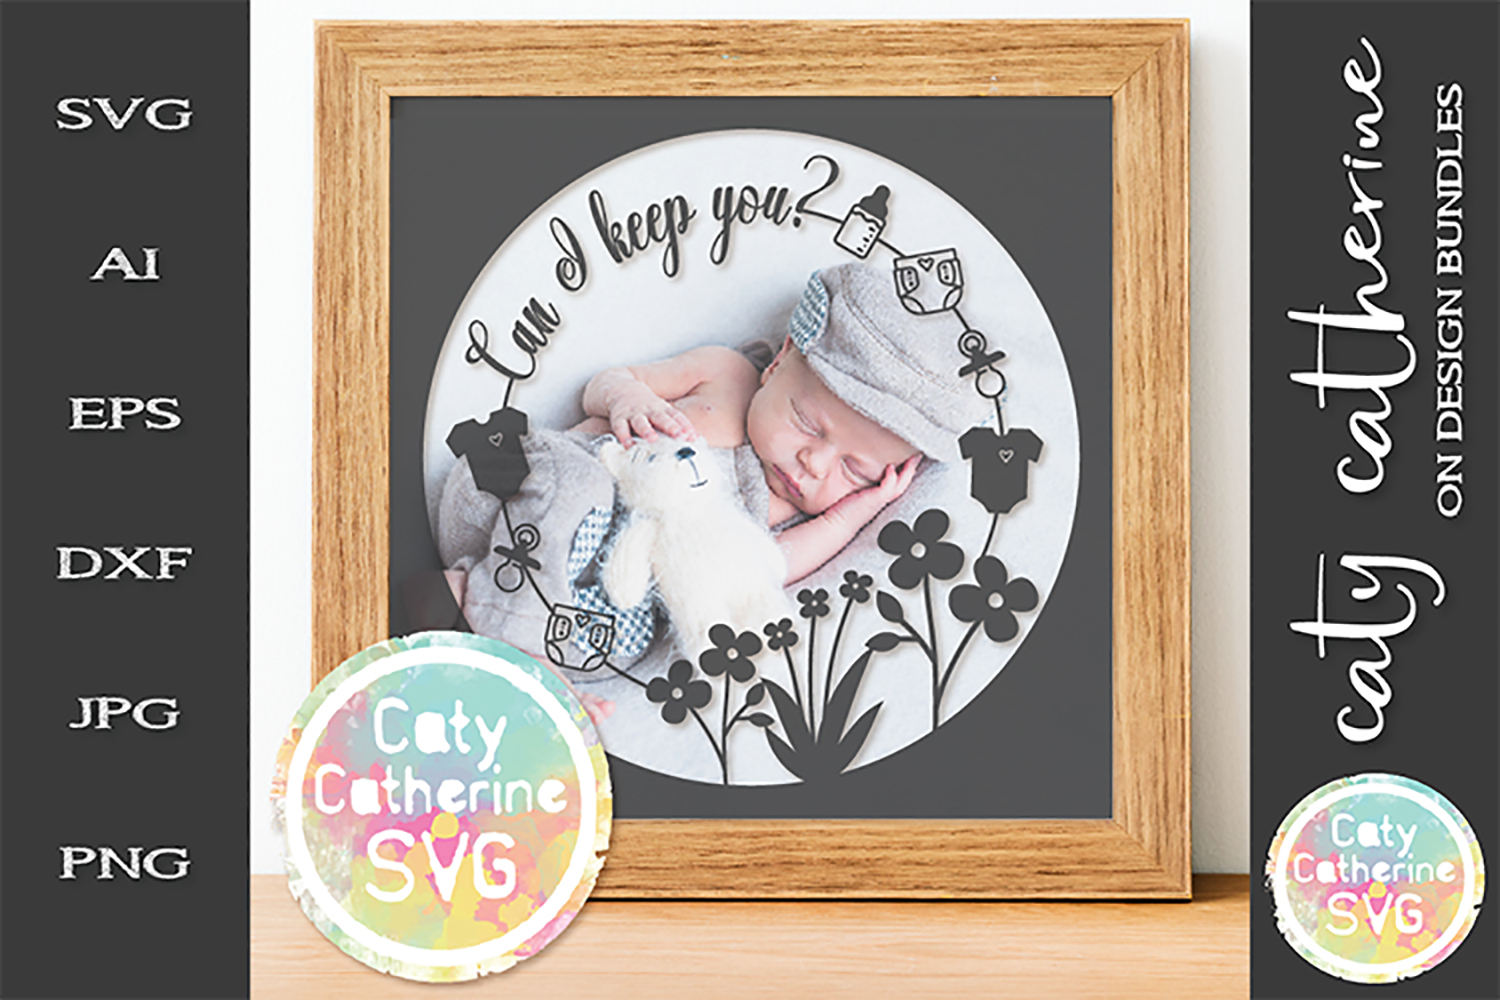 Can I Keep You? Baby Photo Frame SVG Cut File example image 1